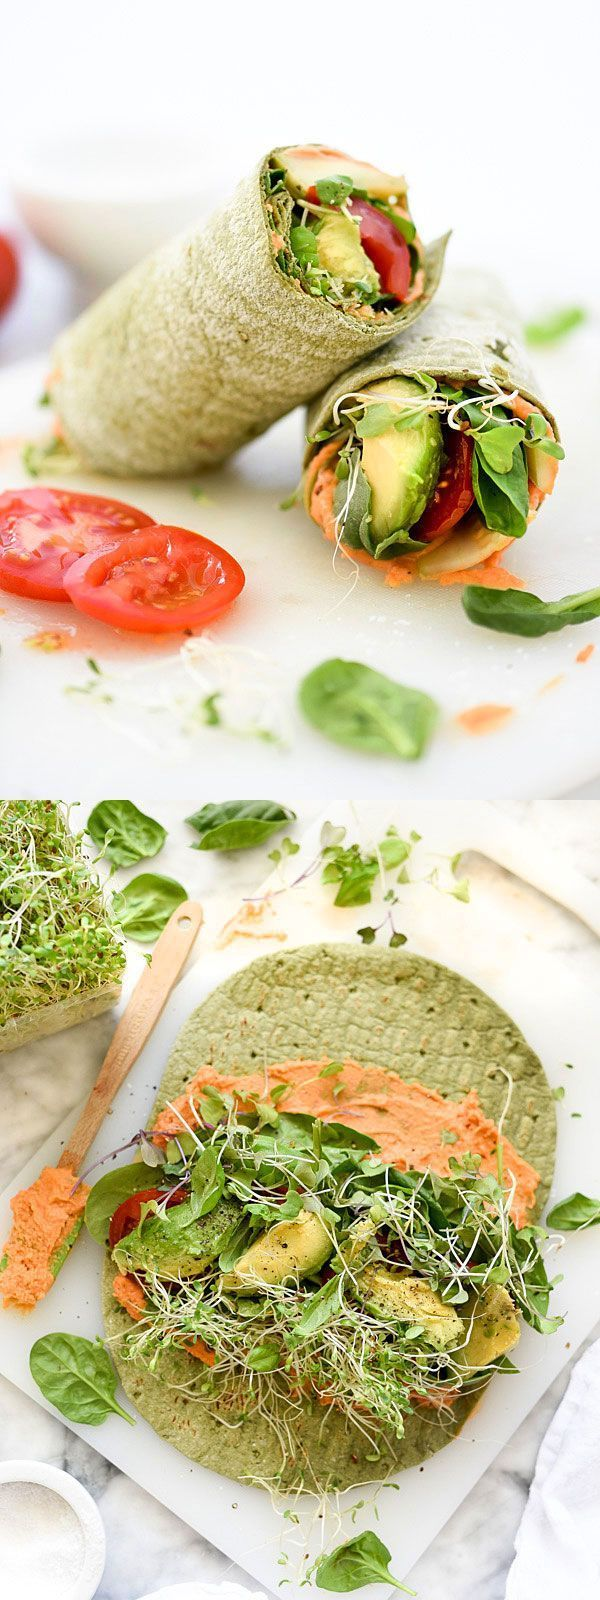 My favorite hummus for wrapping is a spicy roasted red pepper, ...  - Food -